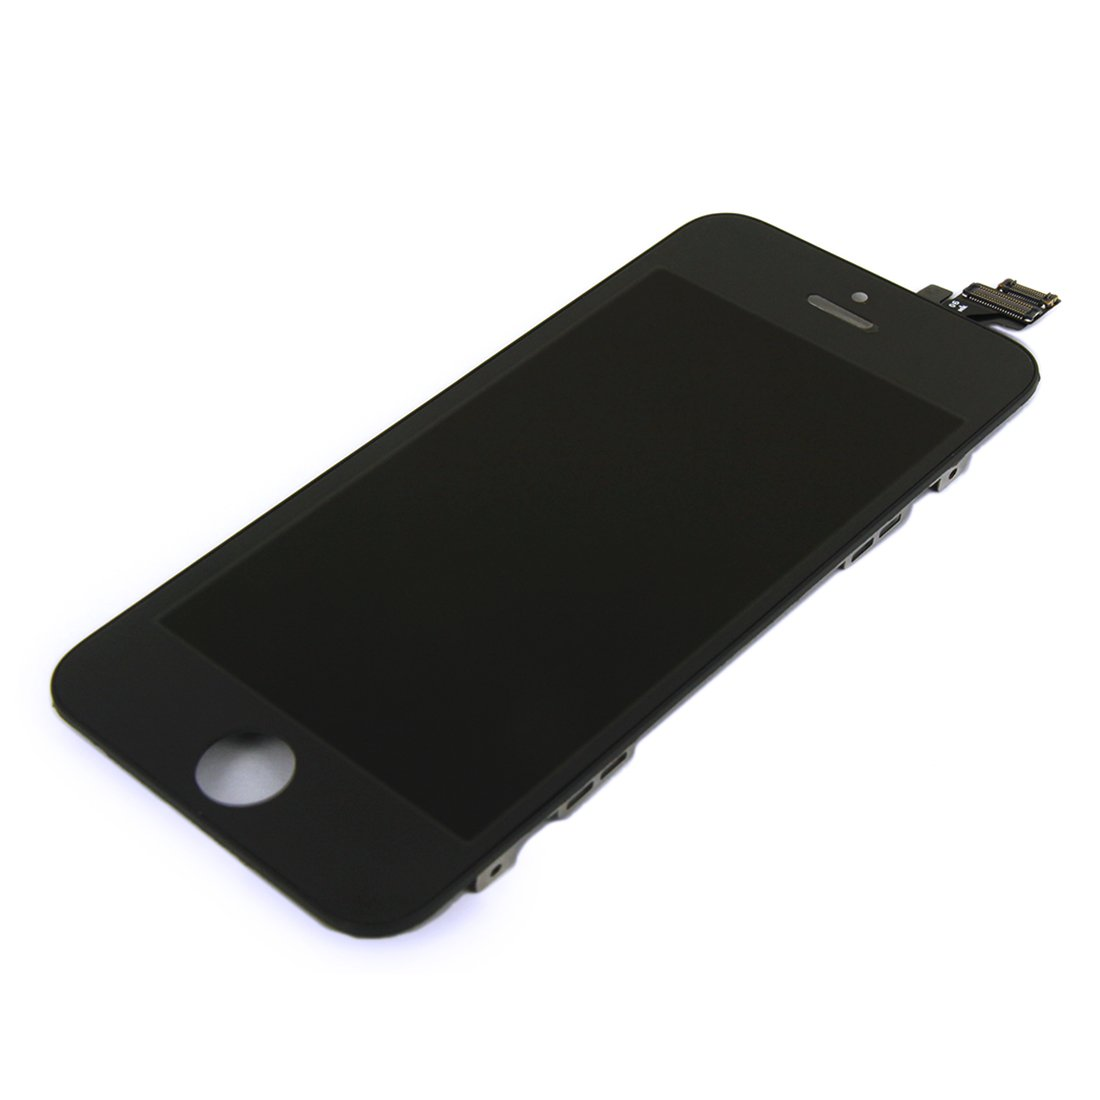 iPhone-5-Black-Full-LCD-Display-Touch-Screen-Digitizer-Mobile-Phone-Repair-Part-Replacement